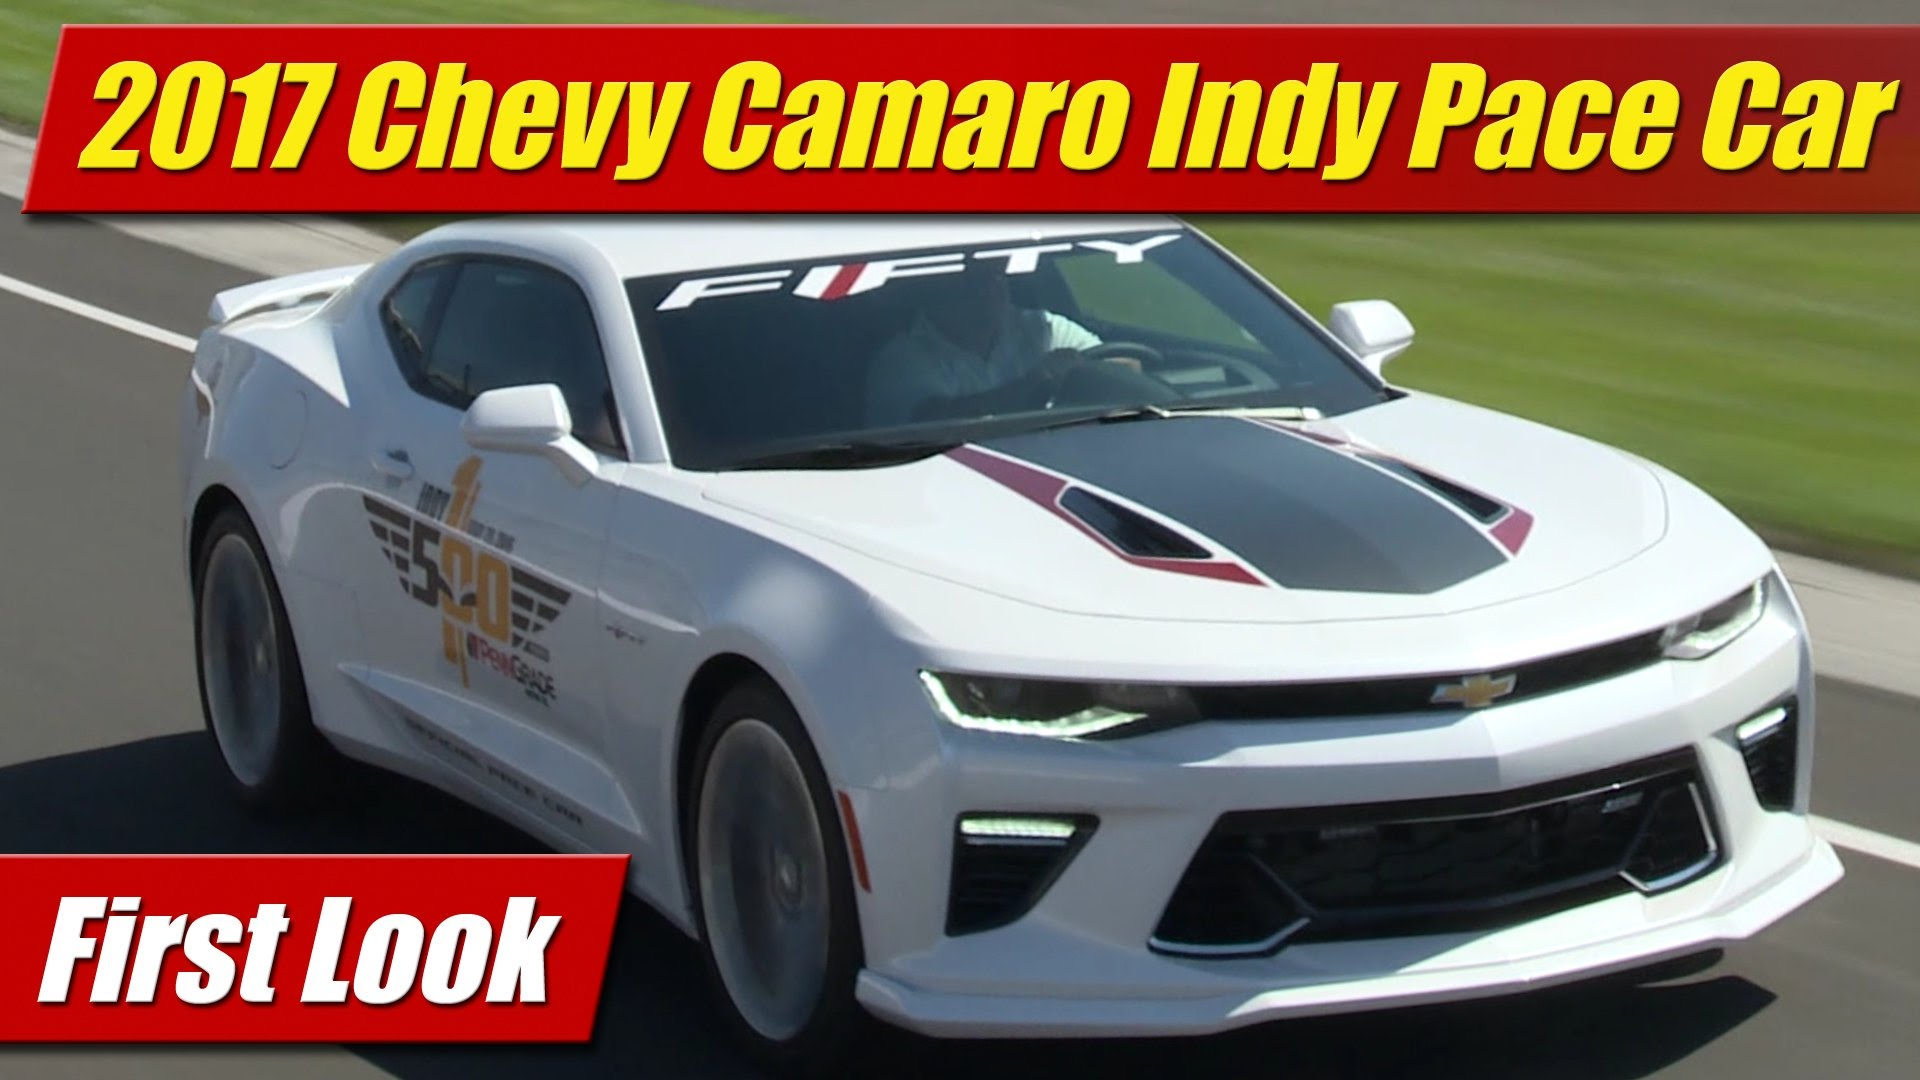 2017 Chevrolet Camaro 50th Anniversary Edition To Pace Indy 500 Testdriven Tv